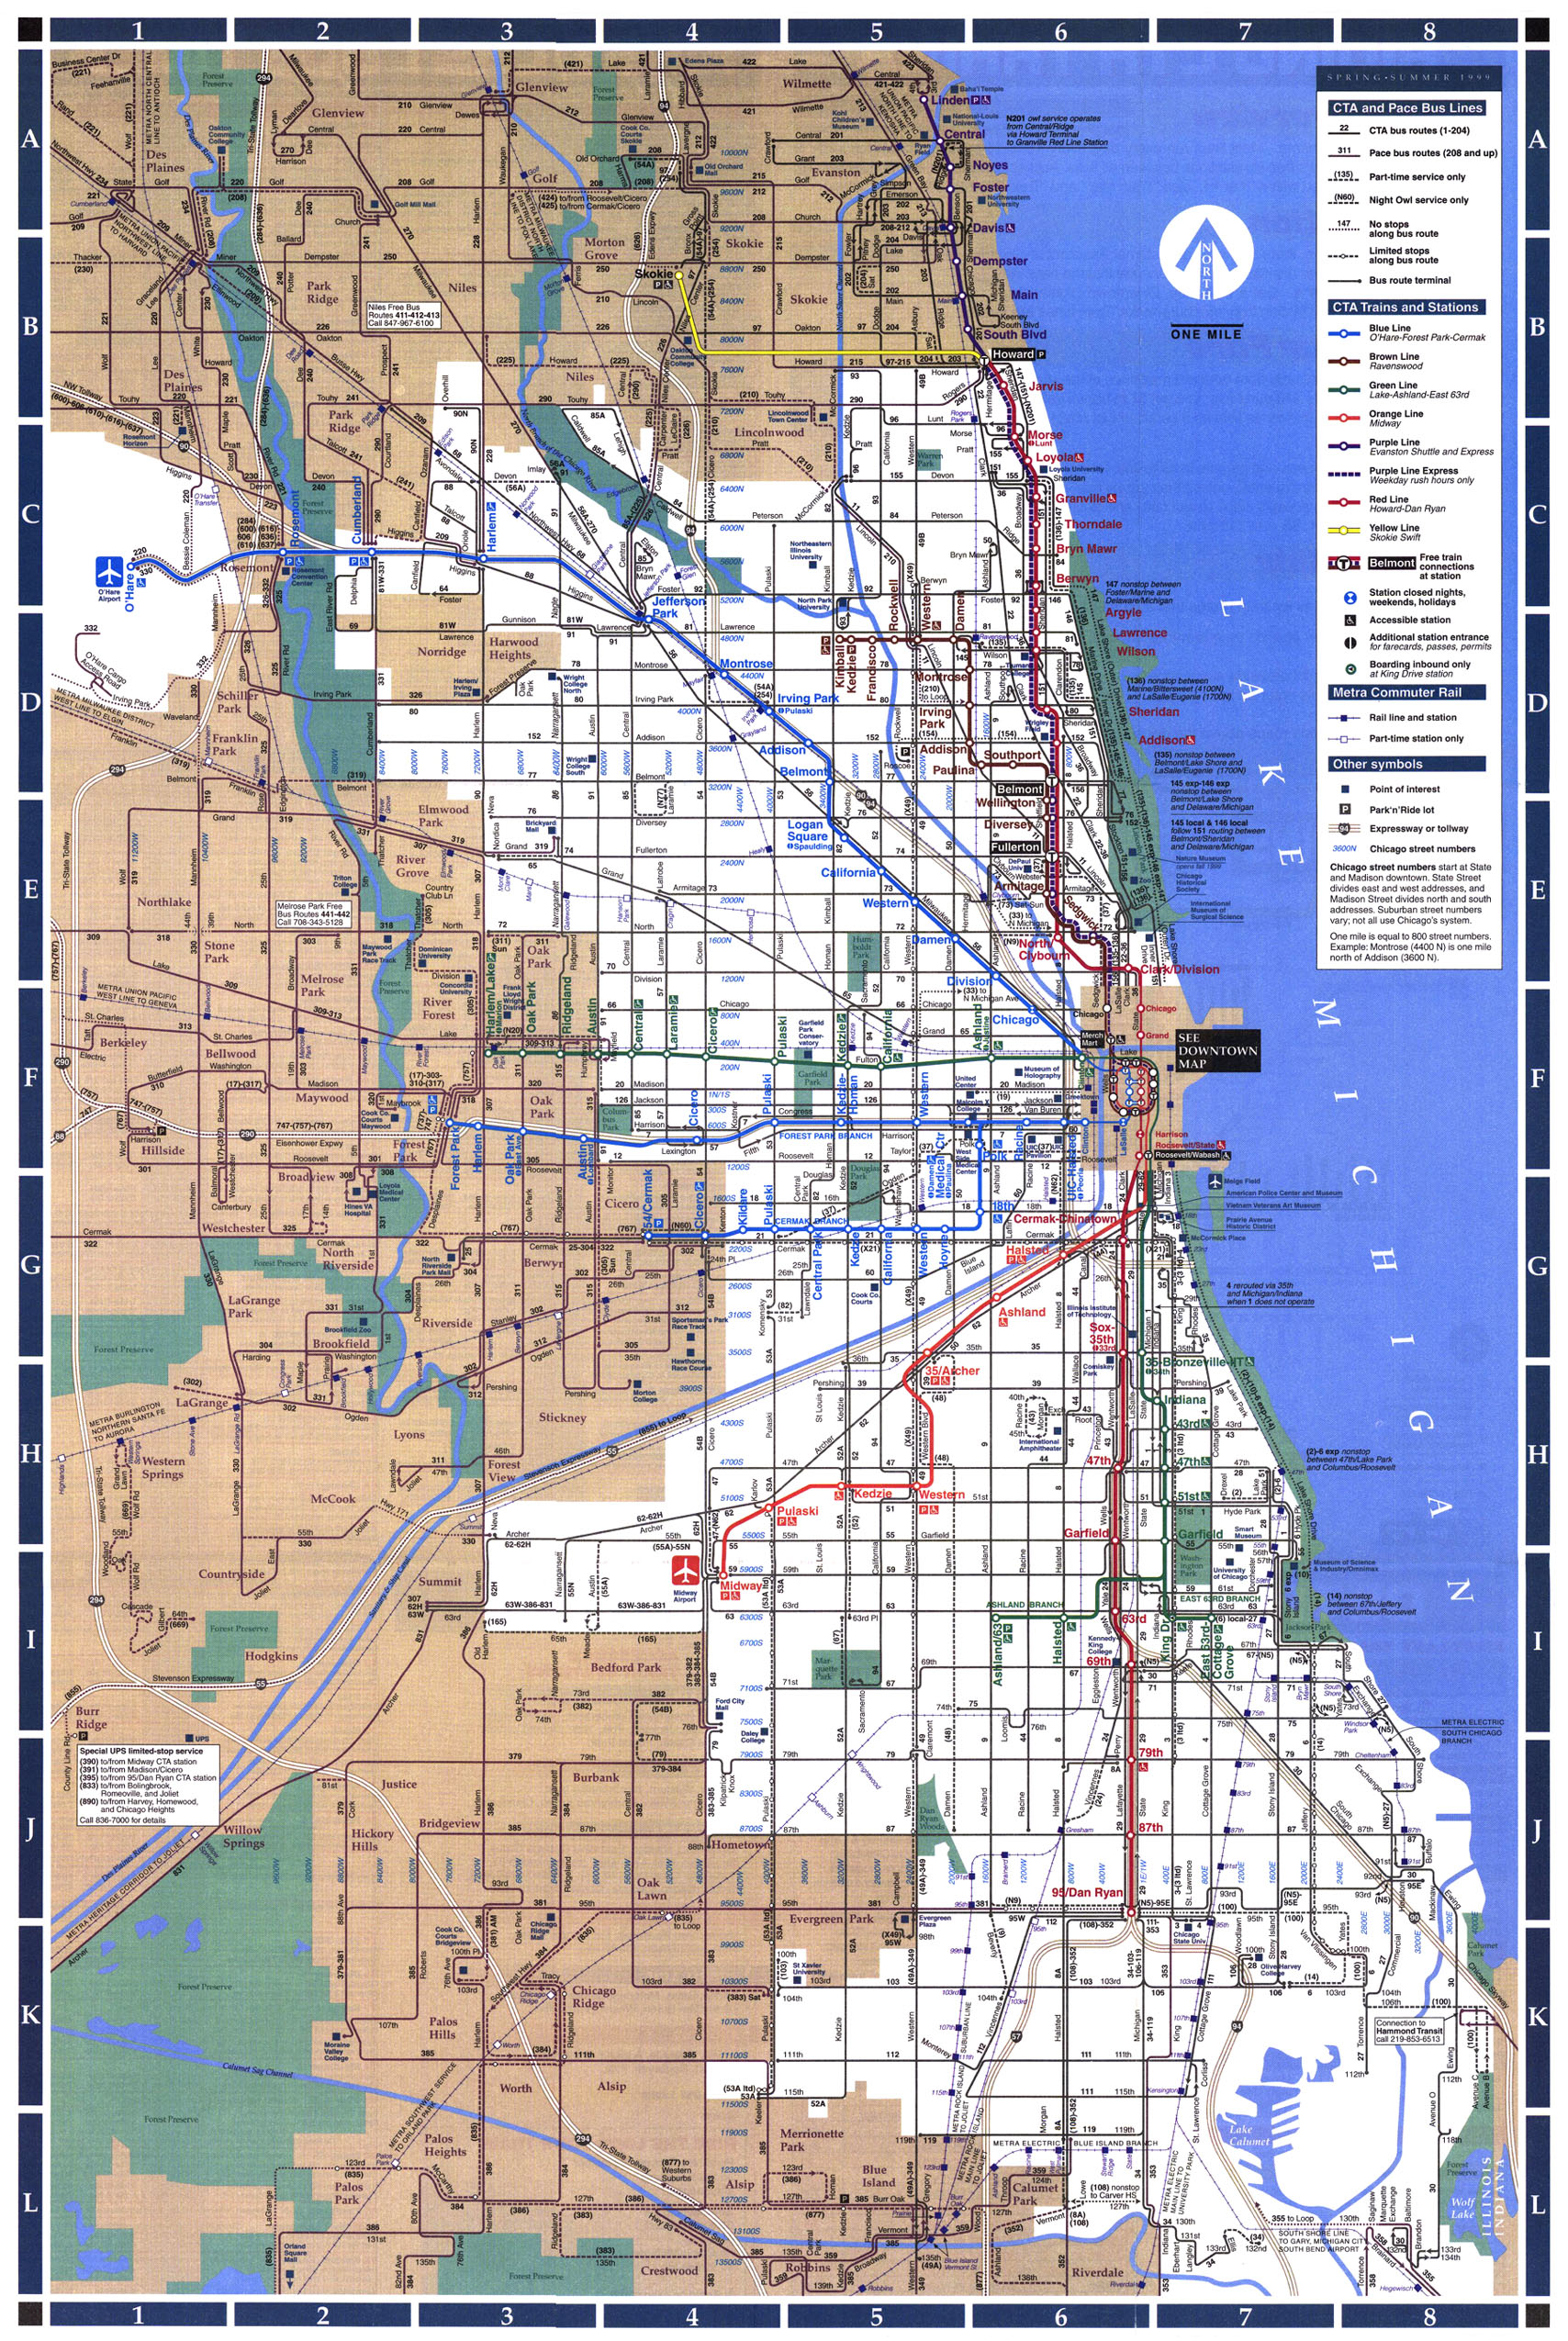 Chicago L System Map - Chicago IL • mappery on map of chicago restaurants, map of chicago rail system, map of mbta system, map of chicago metro, map of patco system, map of chicago river system, map of la metro system, map of chicago train, map of chicago world's fair, chicago train system, map of chicago metropolitan area, map of chicago university campus, map of chicago transportation system, map of chicago metra system,